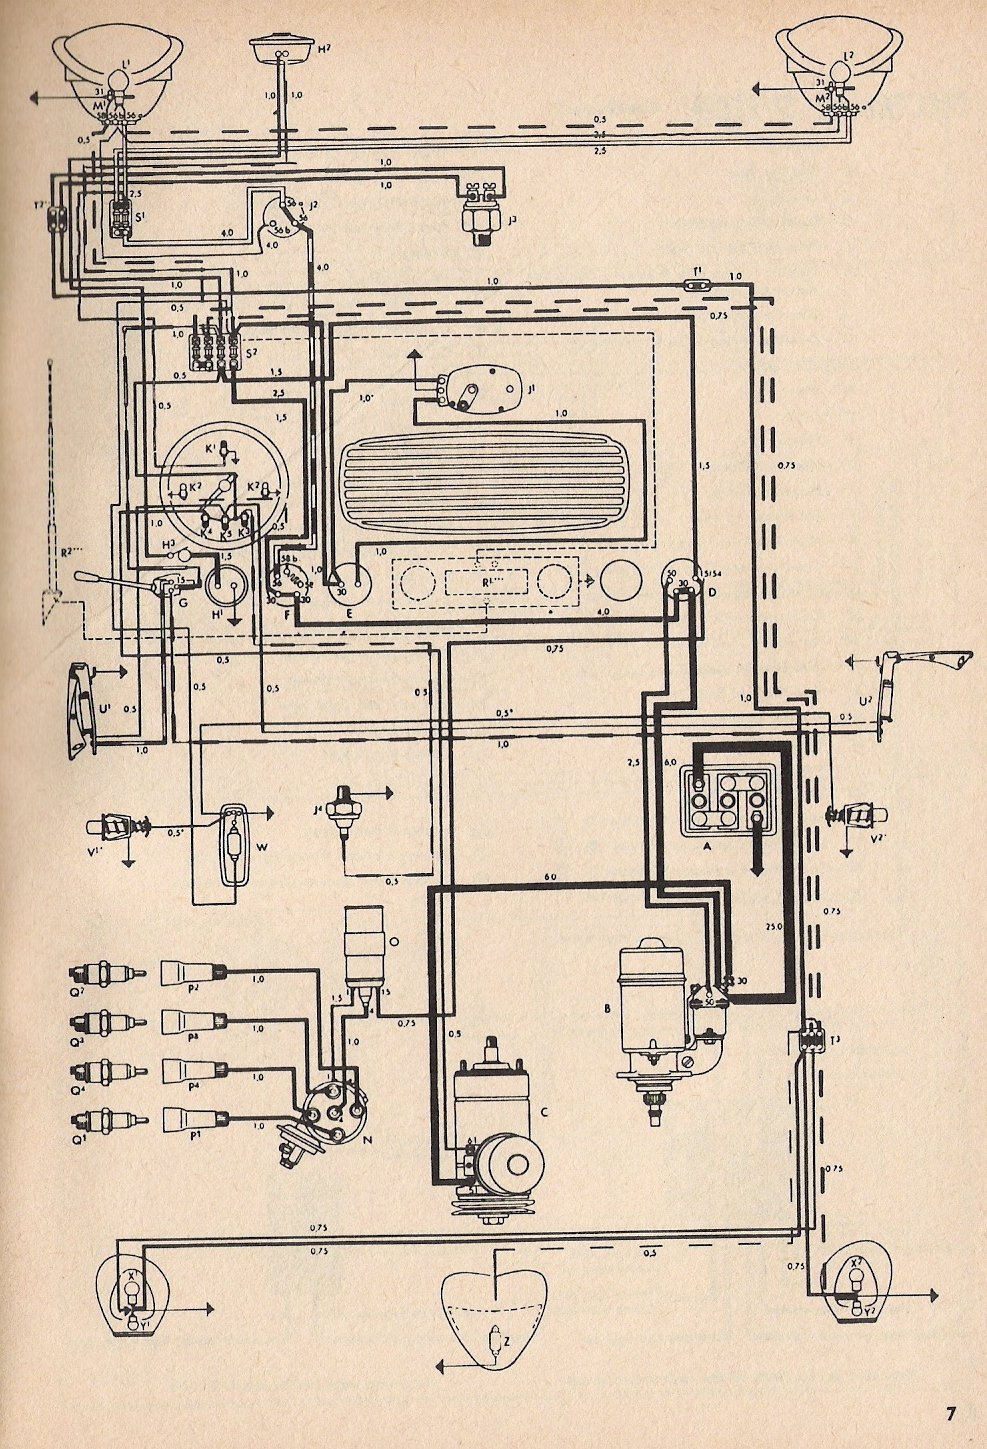 1975 Vw Super Beetle Wiring Diagram Not Lossing Volkswagen Thesamba Com Type 1 Diagrams 1972